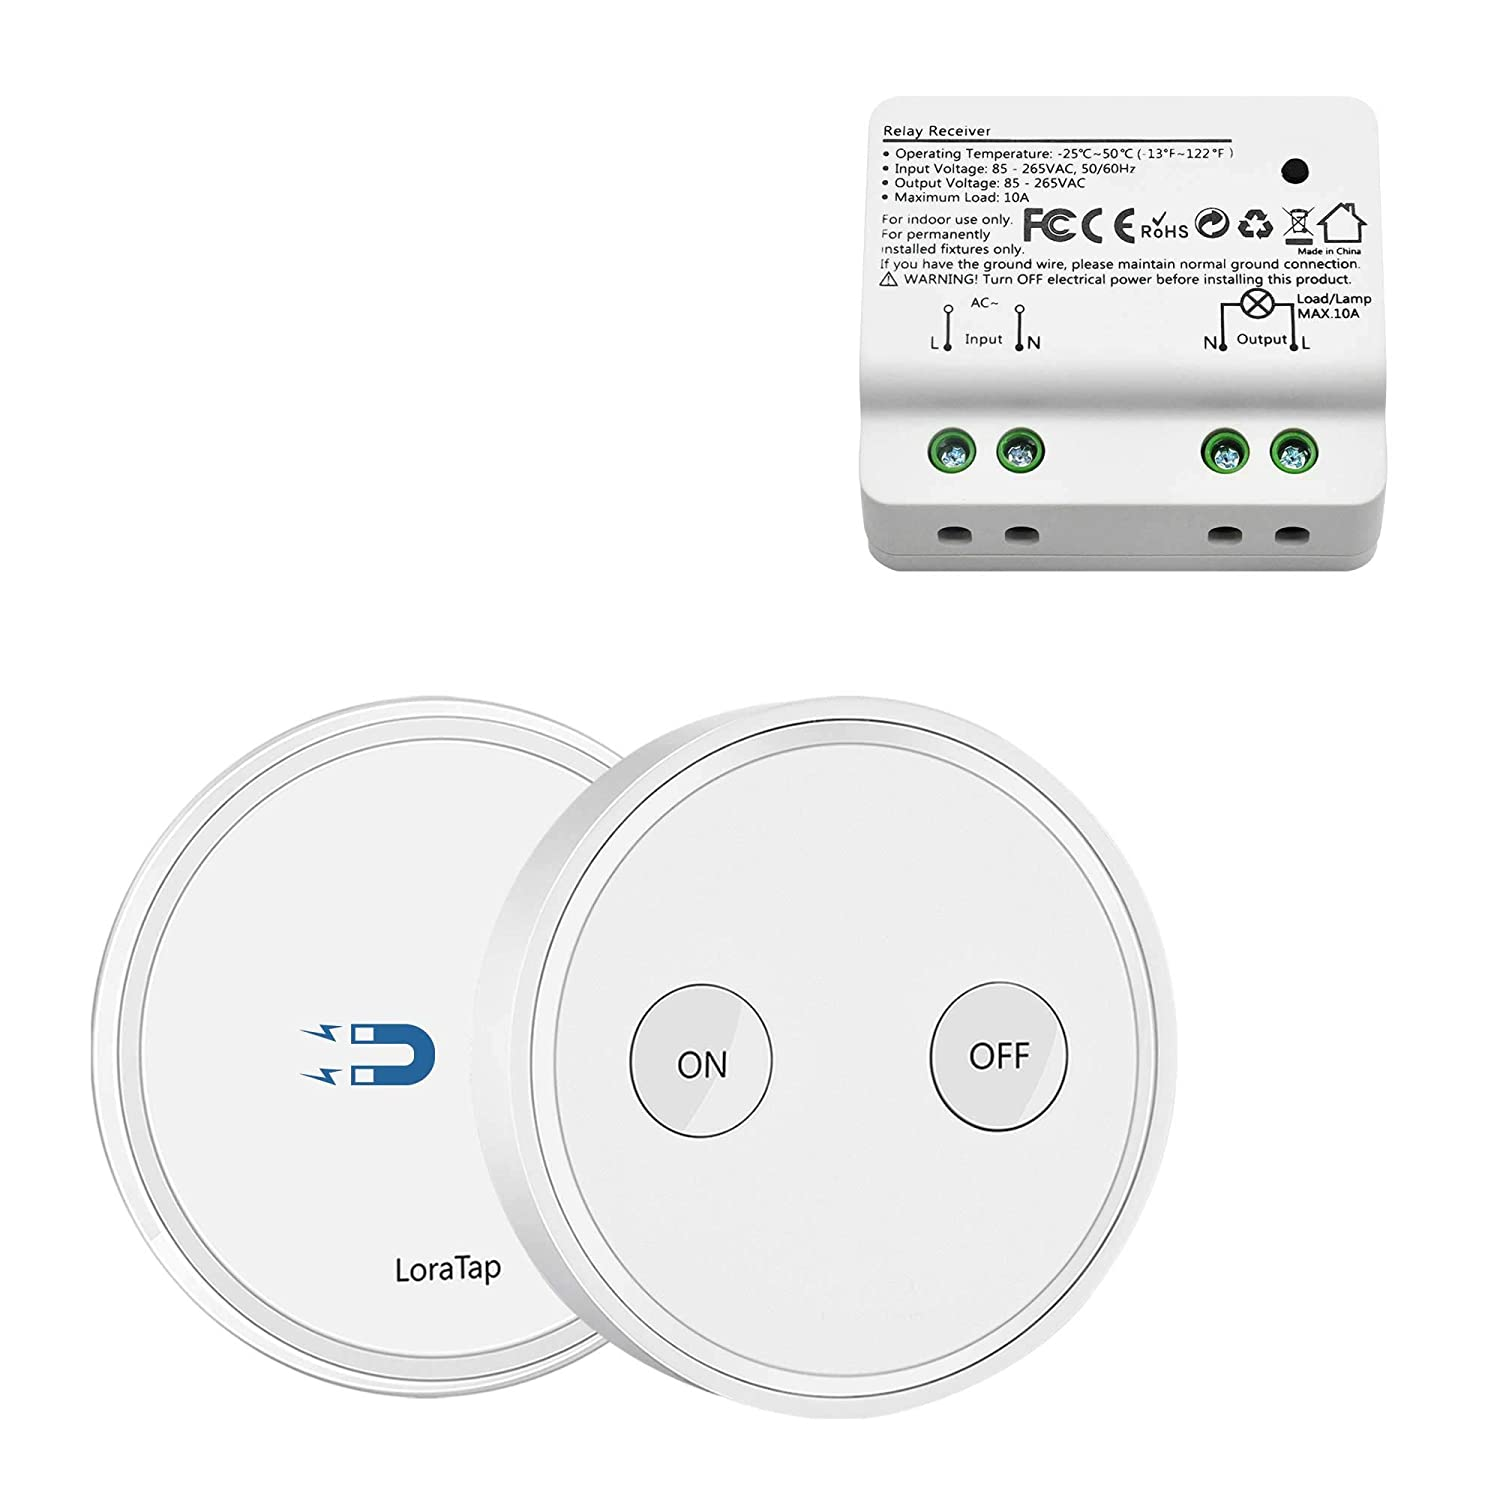 Loratap Wireless Lights Switch Kit 915mhz 656ft Range Remote Light Fixture Ground Wire Install Wiring Control Lamps Ceiling Fan Household Appliances 5 Years Warranty And Receiver